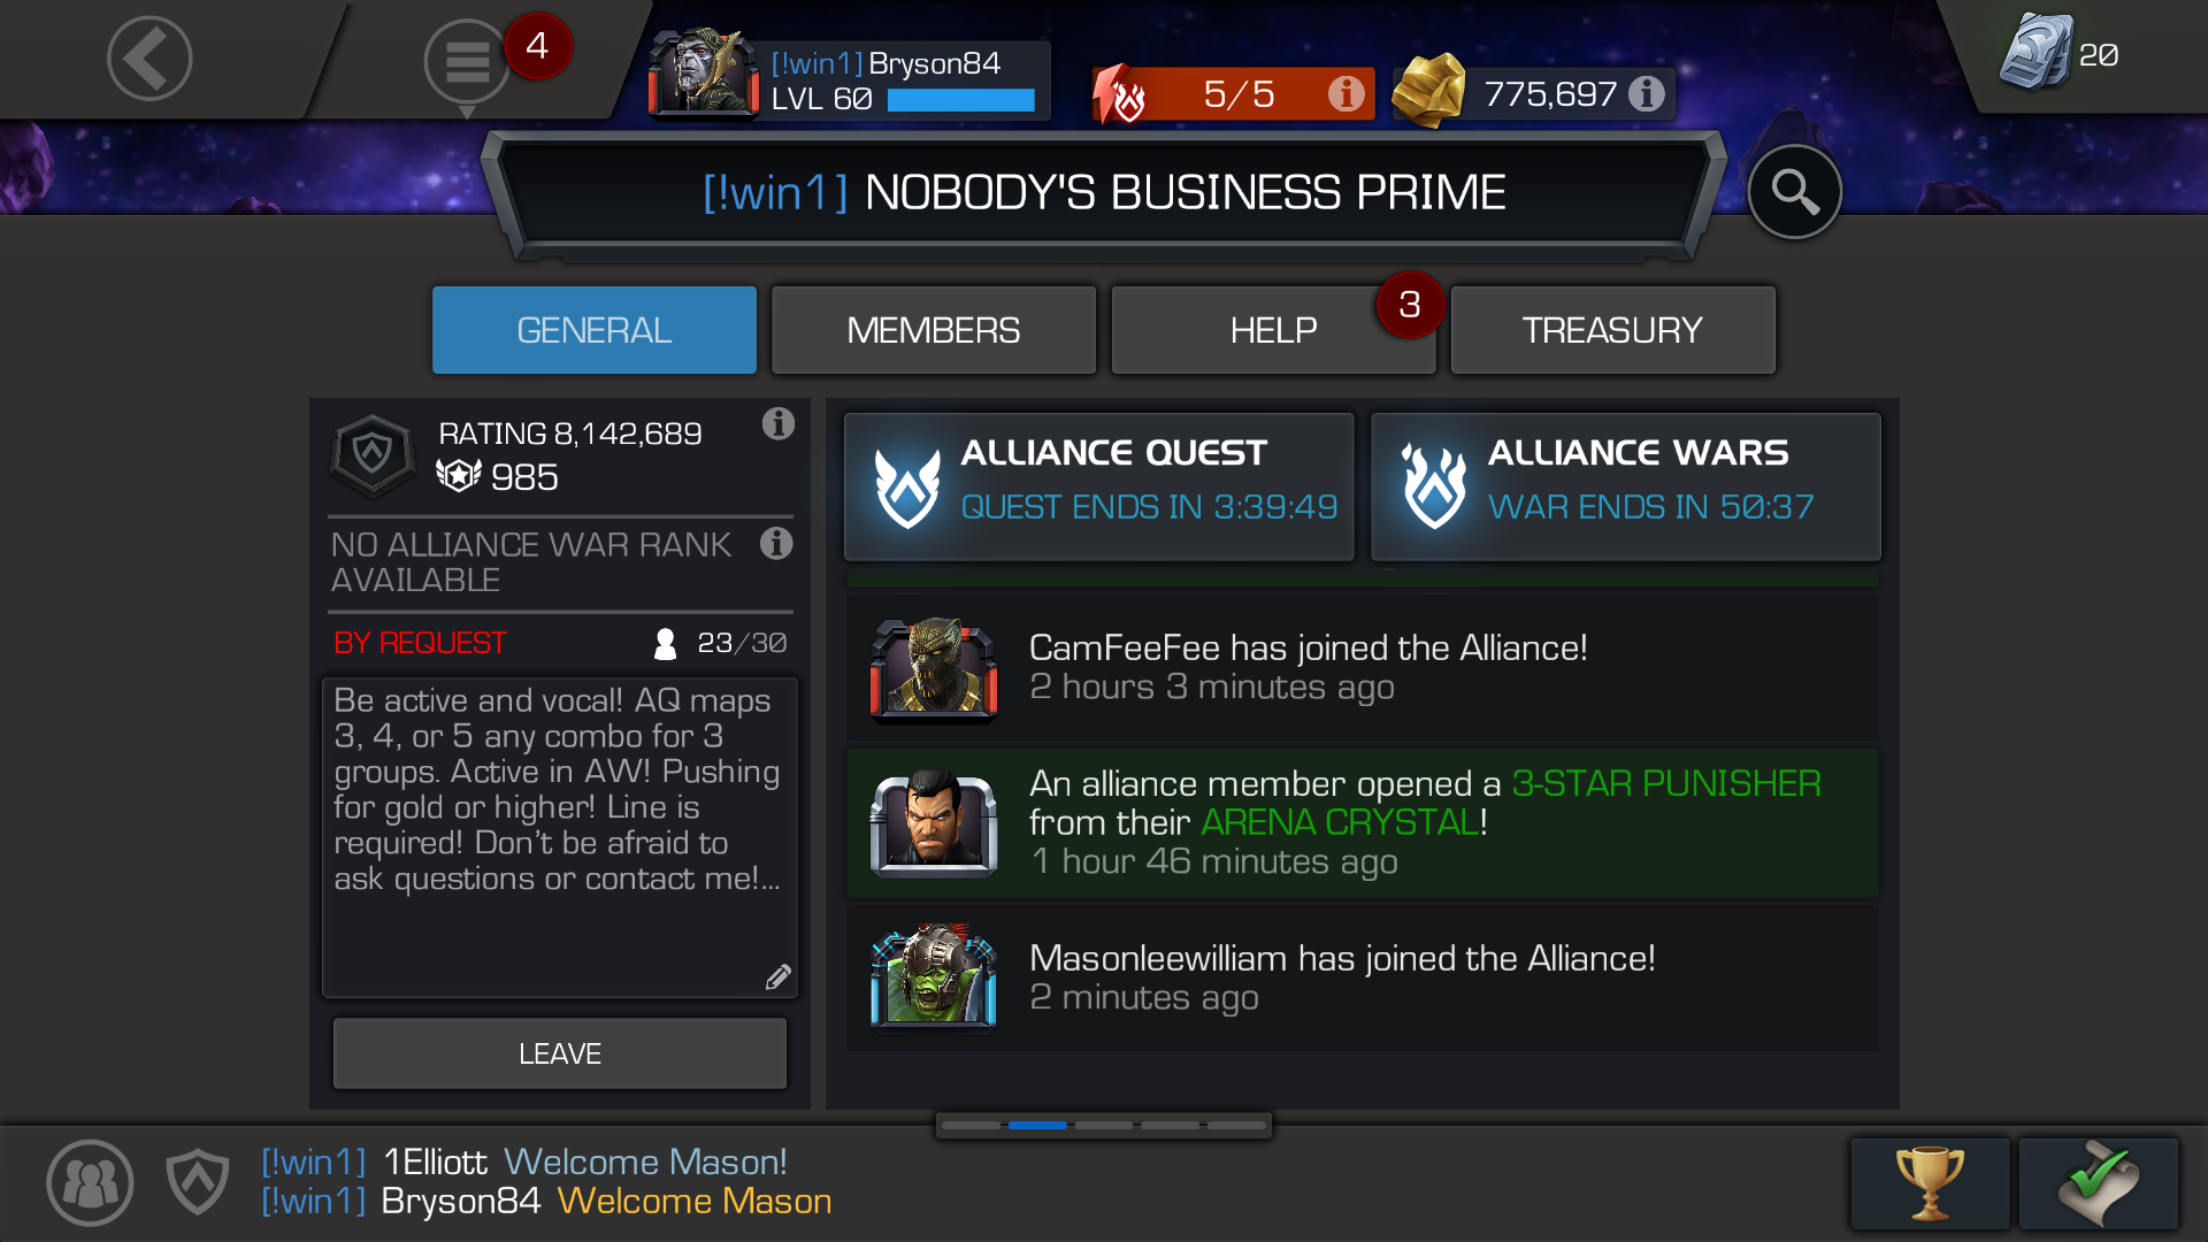 Looking for members! Flexible with AQ maps and active in AW — Marvel